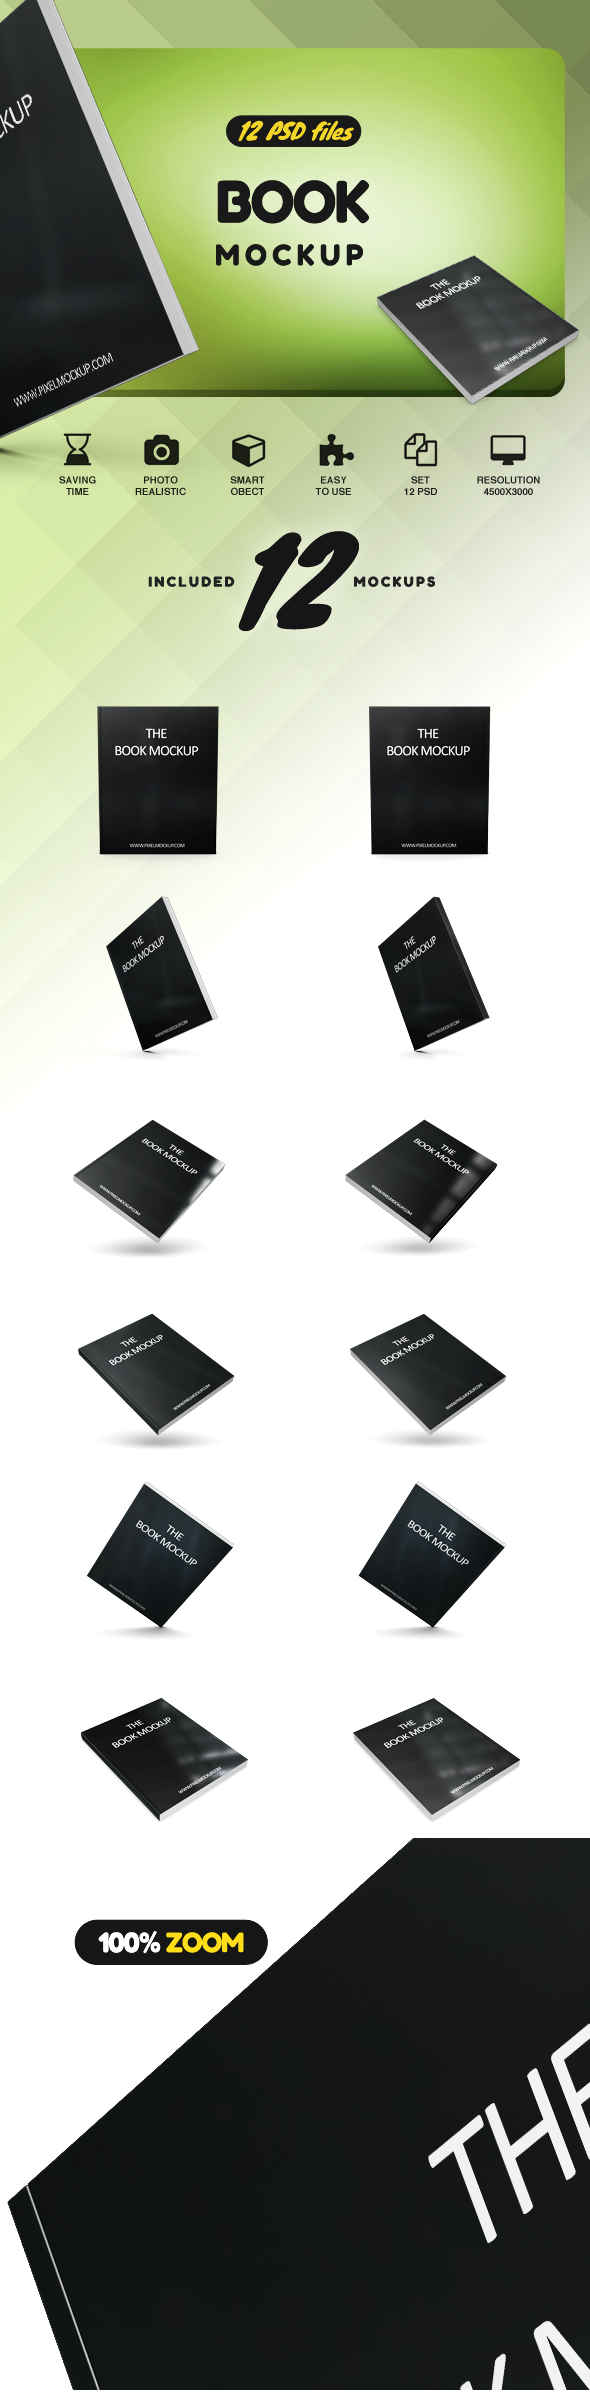 Student Book Mockup example image 2